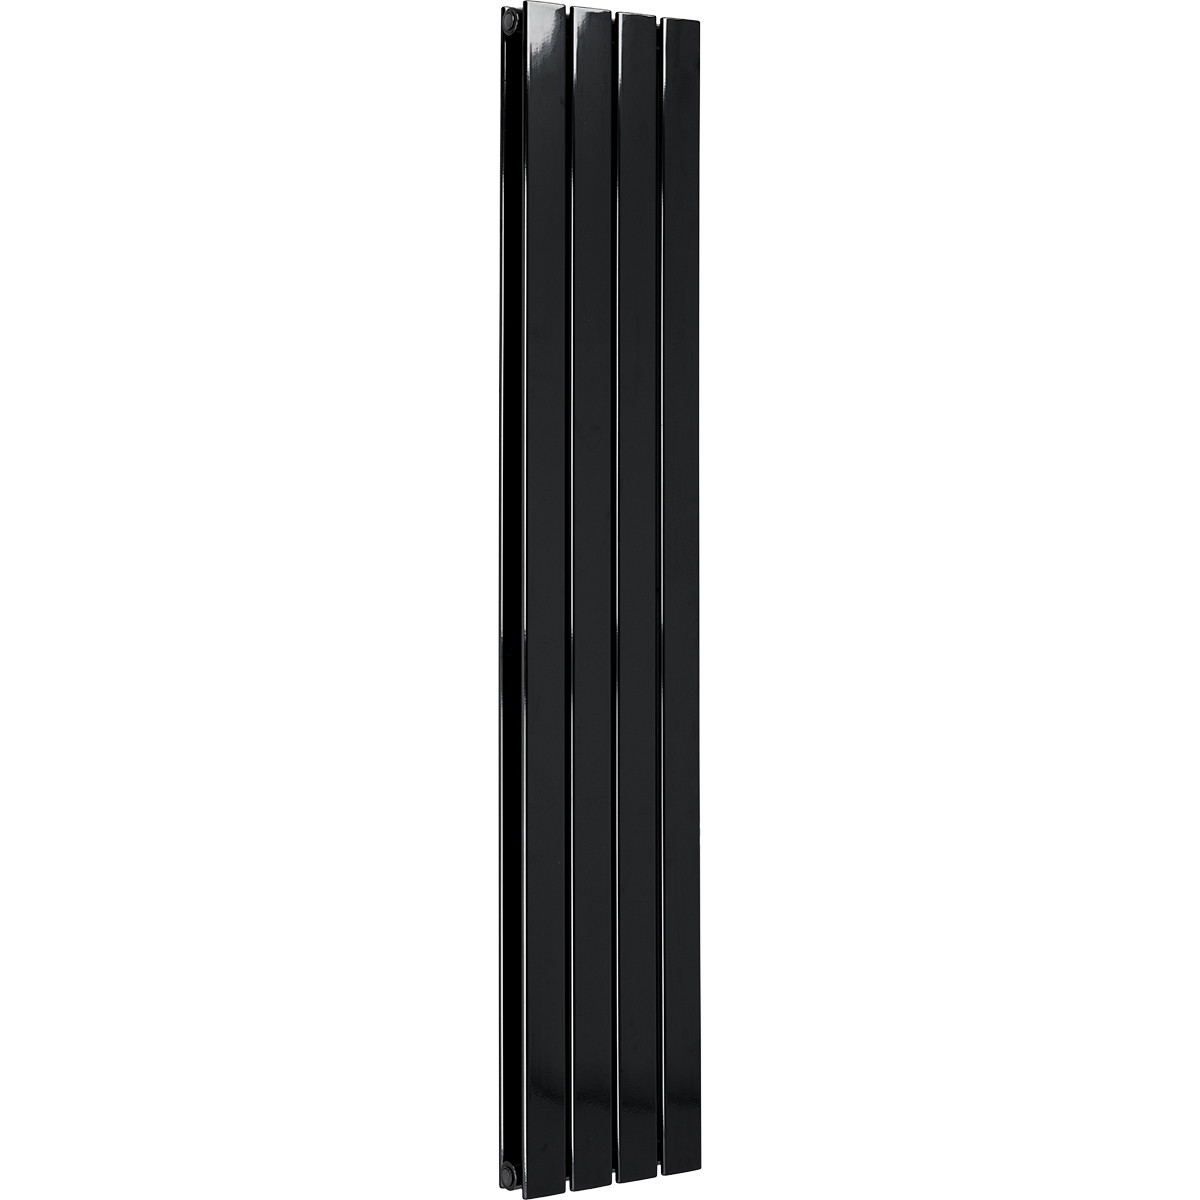 Hudson 1600 x 300 Double Panel Black Radiator